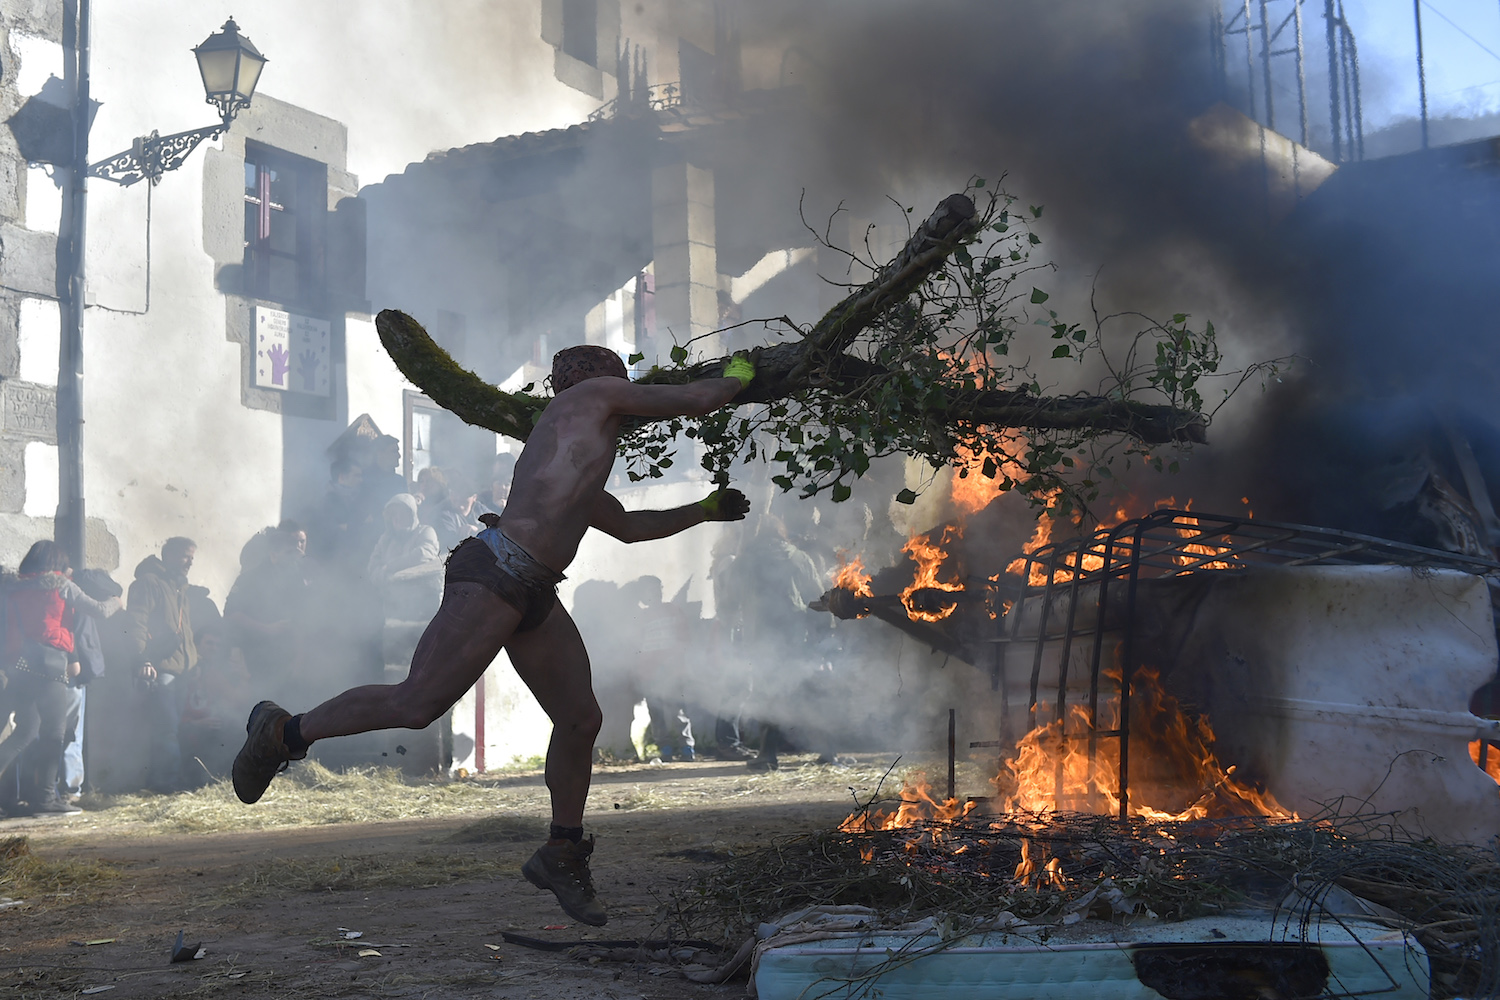 TOPSHOT - A masked participant throws a tree branch to a burning car during the ancient carnival of Zubieta, in the northern Spanish Navarra province on January 30, 2018.  The yearly three day festivities, revolving mainly around agriculture and principally sheep hearding, run on the last Sunday, Monday and Tuesday of January where Navarra Valley locals from two villages dress up and participate in a variety of activites as they perform a pilgrimage through each village. / AFP PHOTO / ANDER GILLENEA        (Photo credit should read ANDER GILLENEA/AFP/Getty Images)